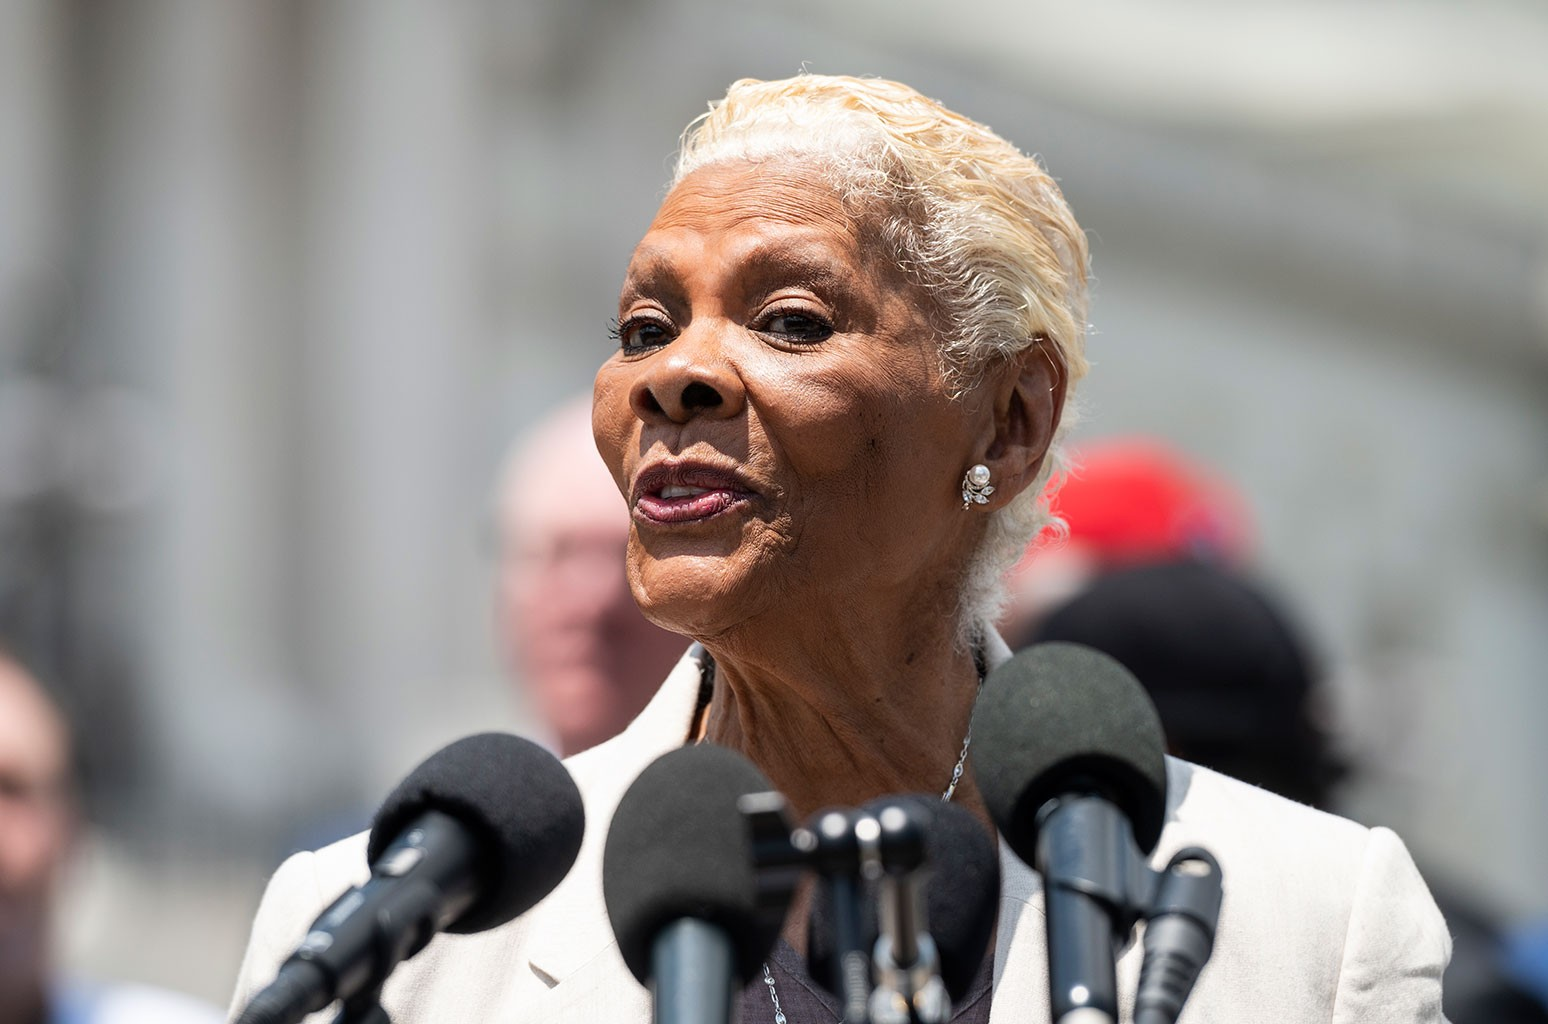 Dionne Warwick Slams Jeff Bezos for Thanking Amazon Workers & Customers for Paying for His Space Flight